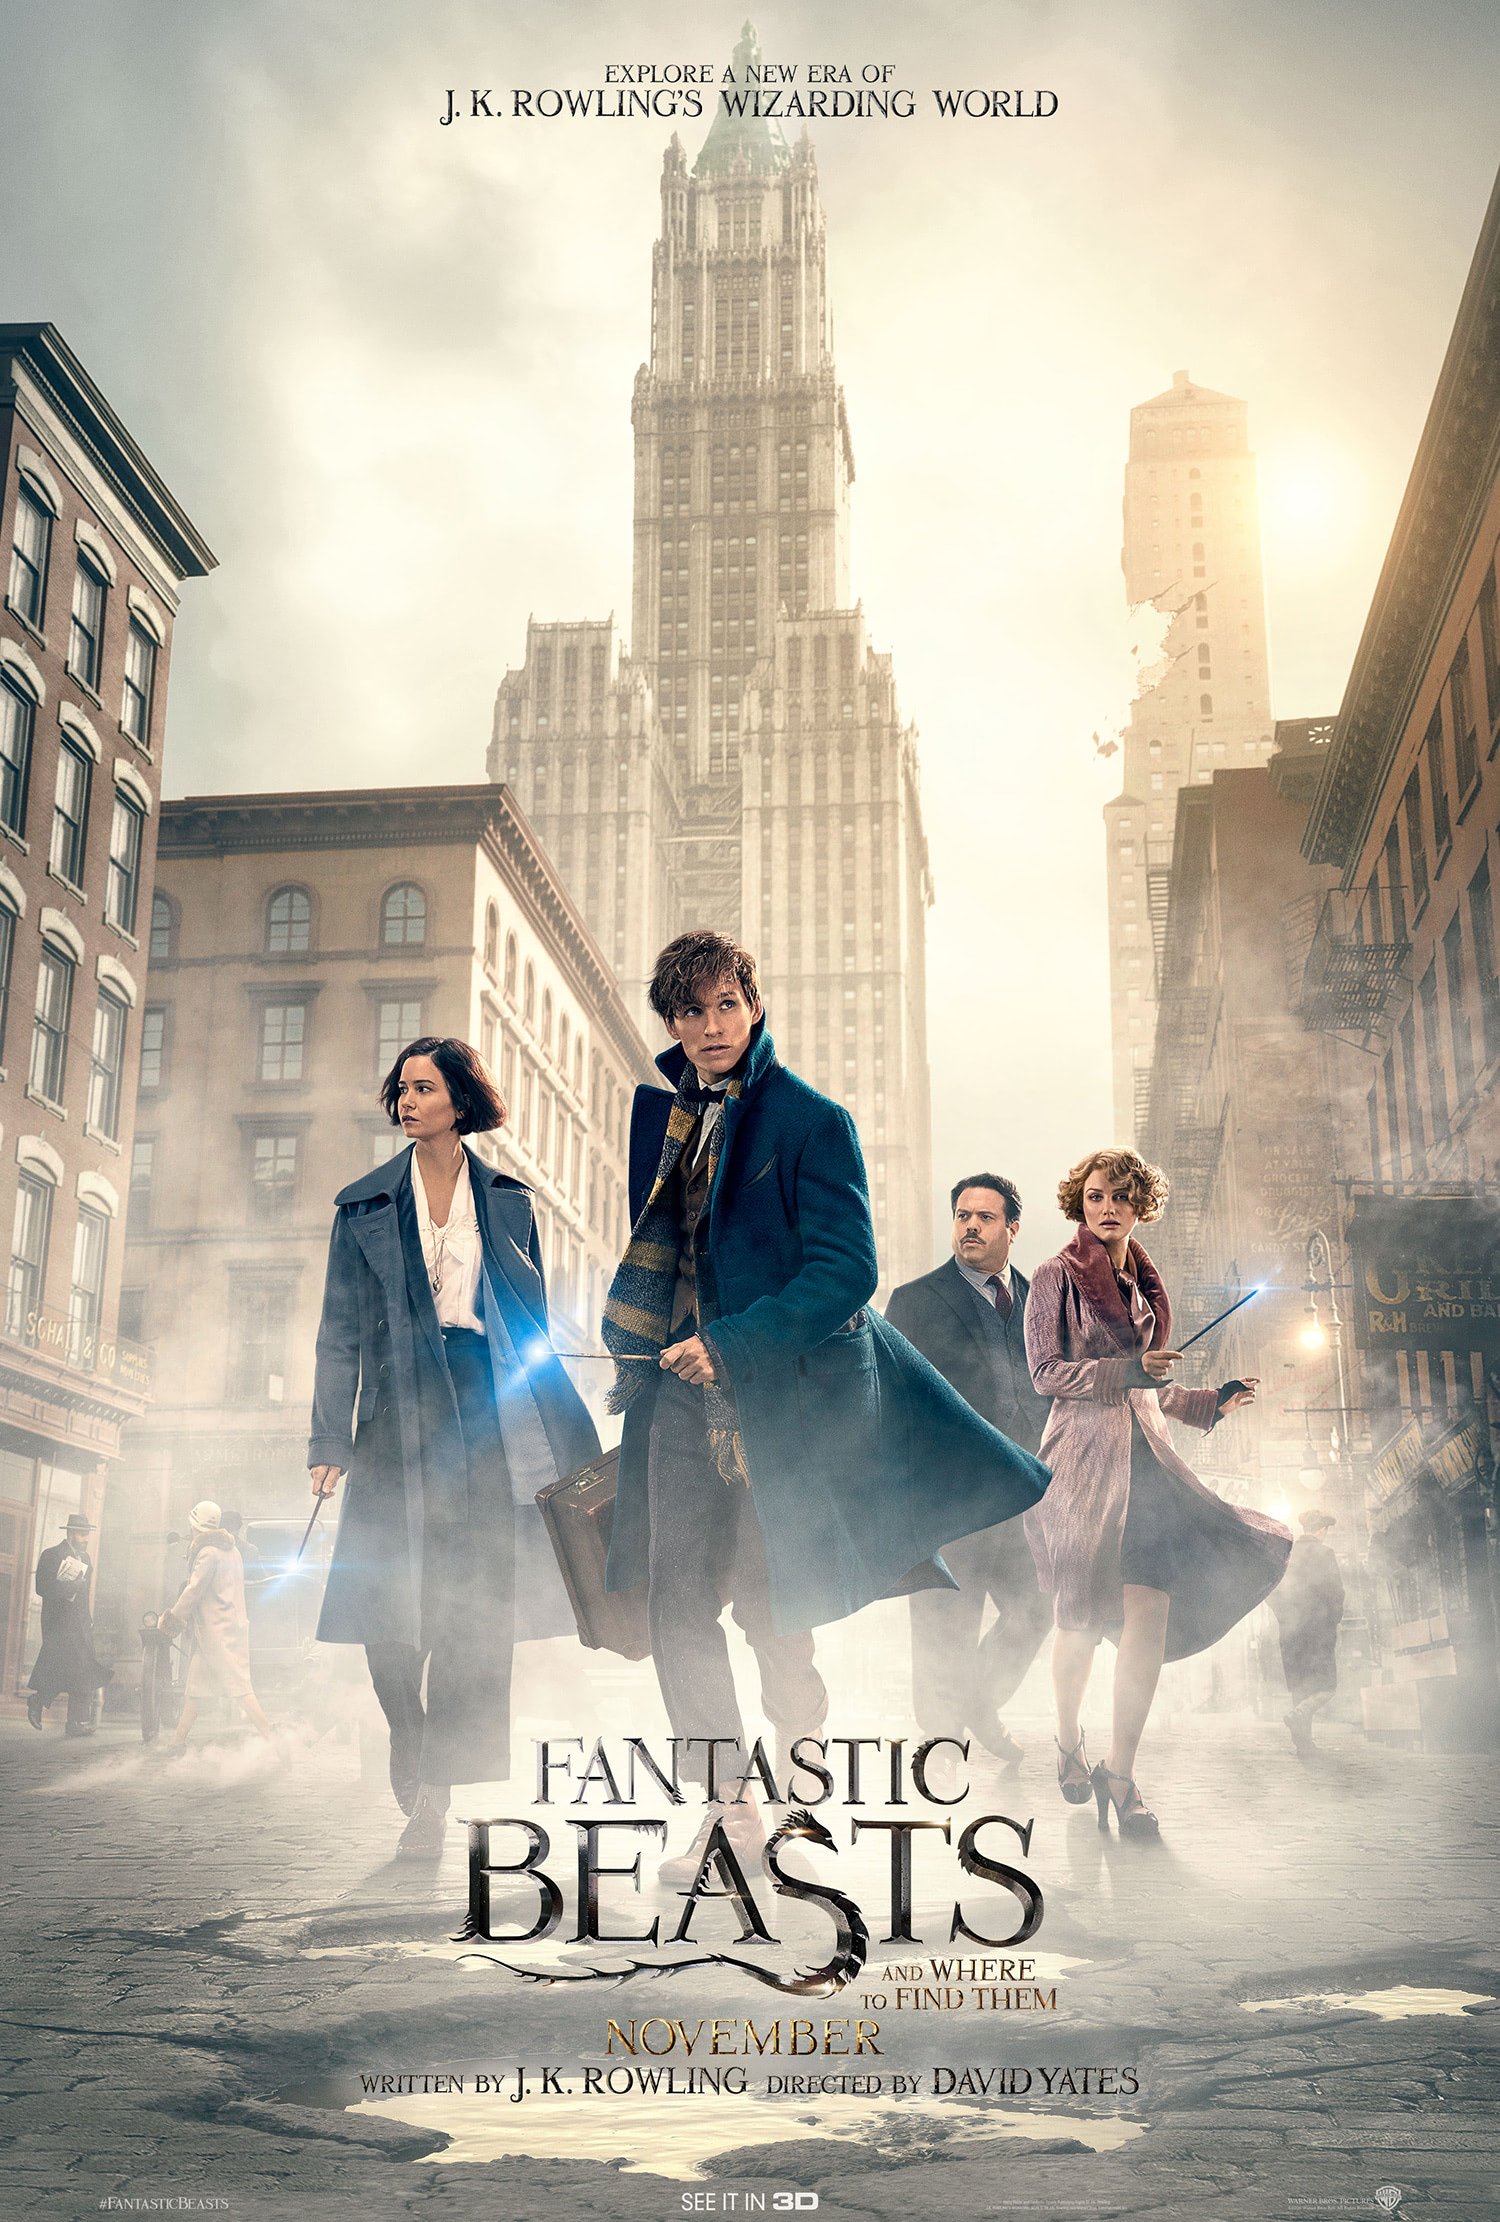 'Fantastic Beasts and Where to Find Them' poster #3